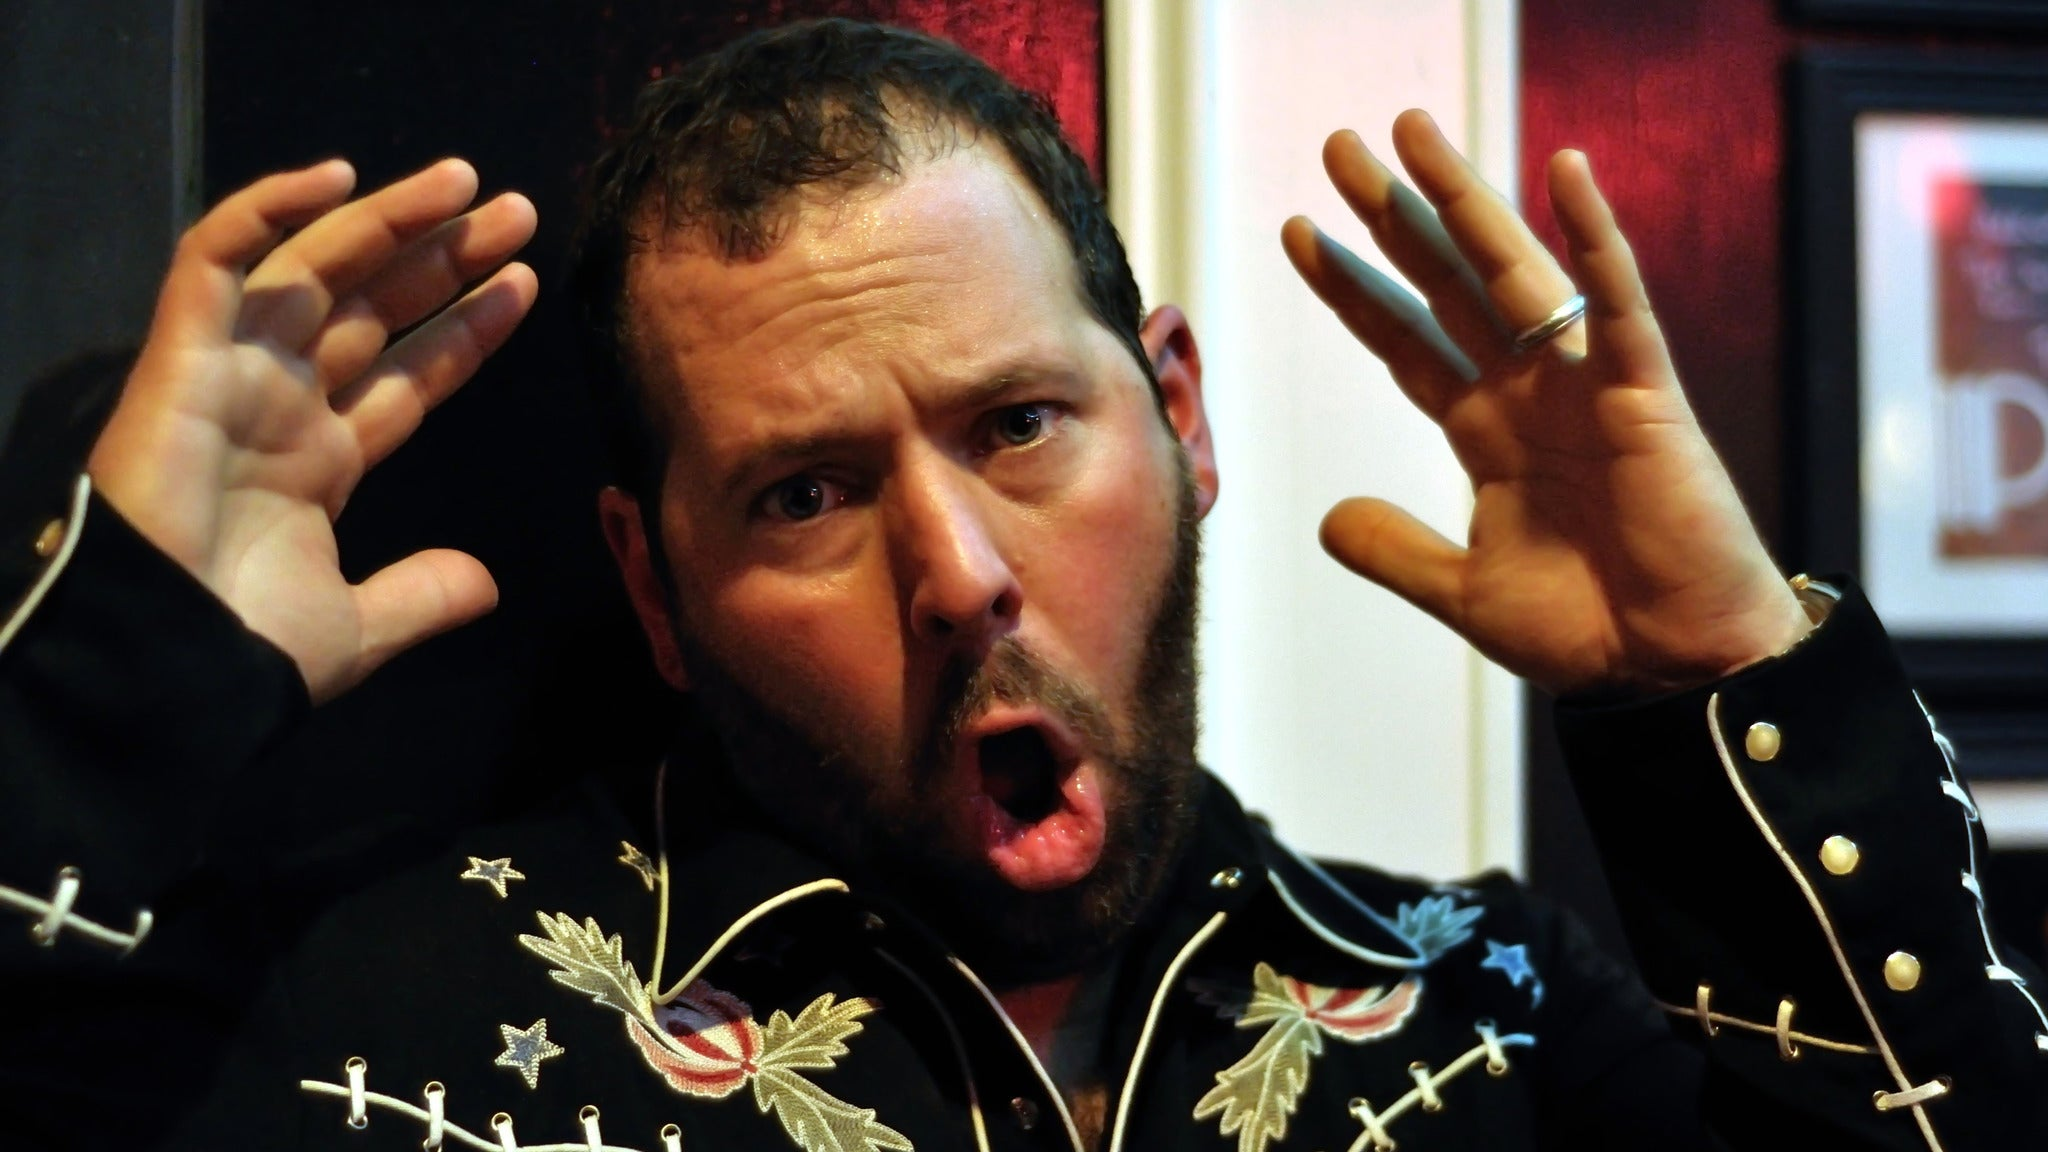 Bert Kreischer at Blue Note Hawaii